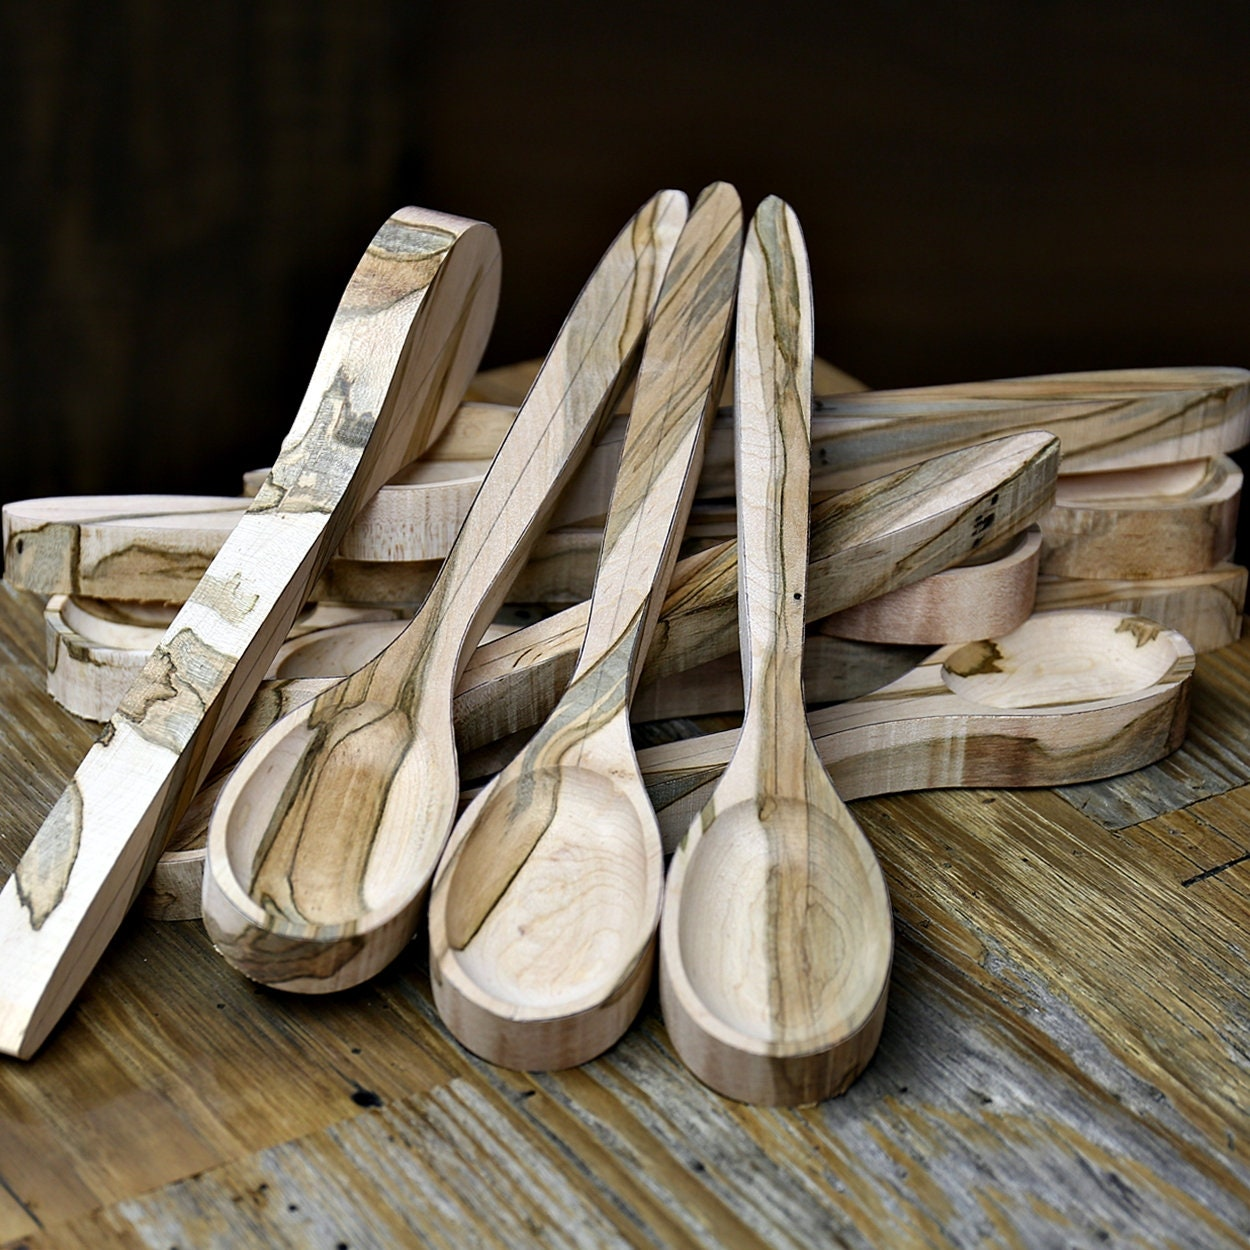 Sussex woodsman the woodsman s shop spoon blanks